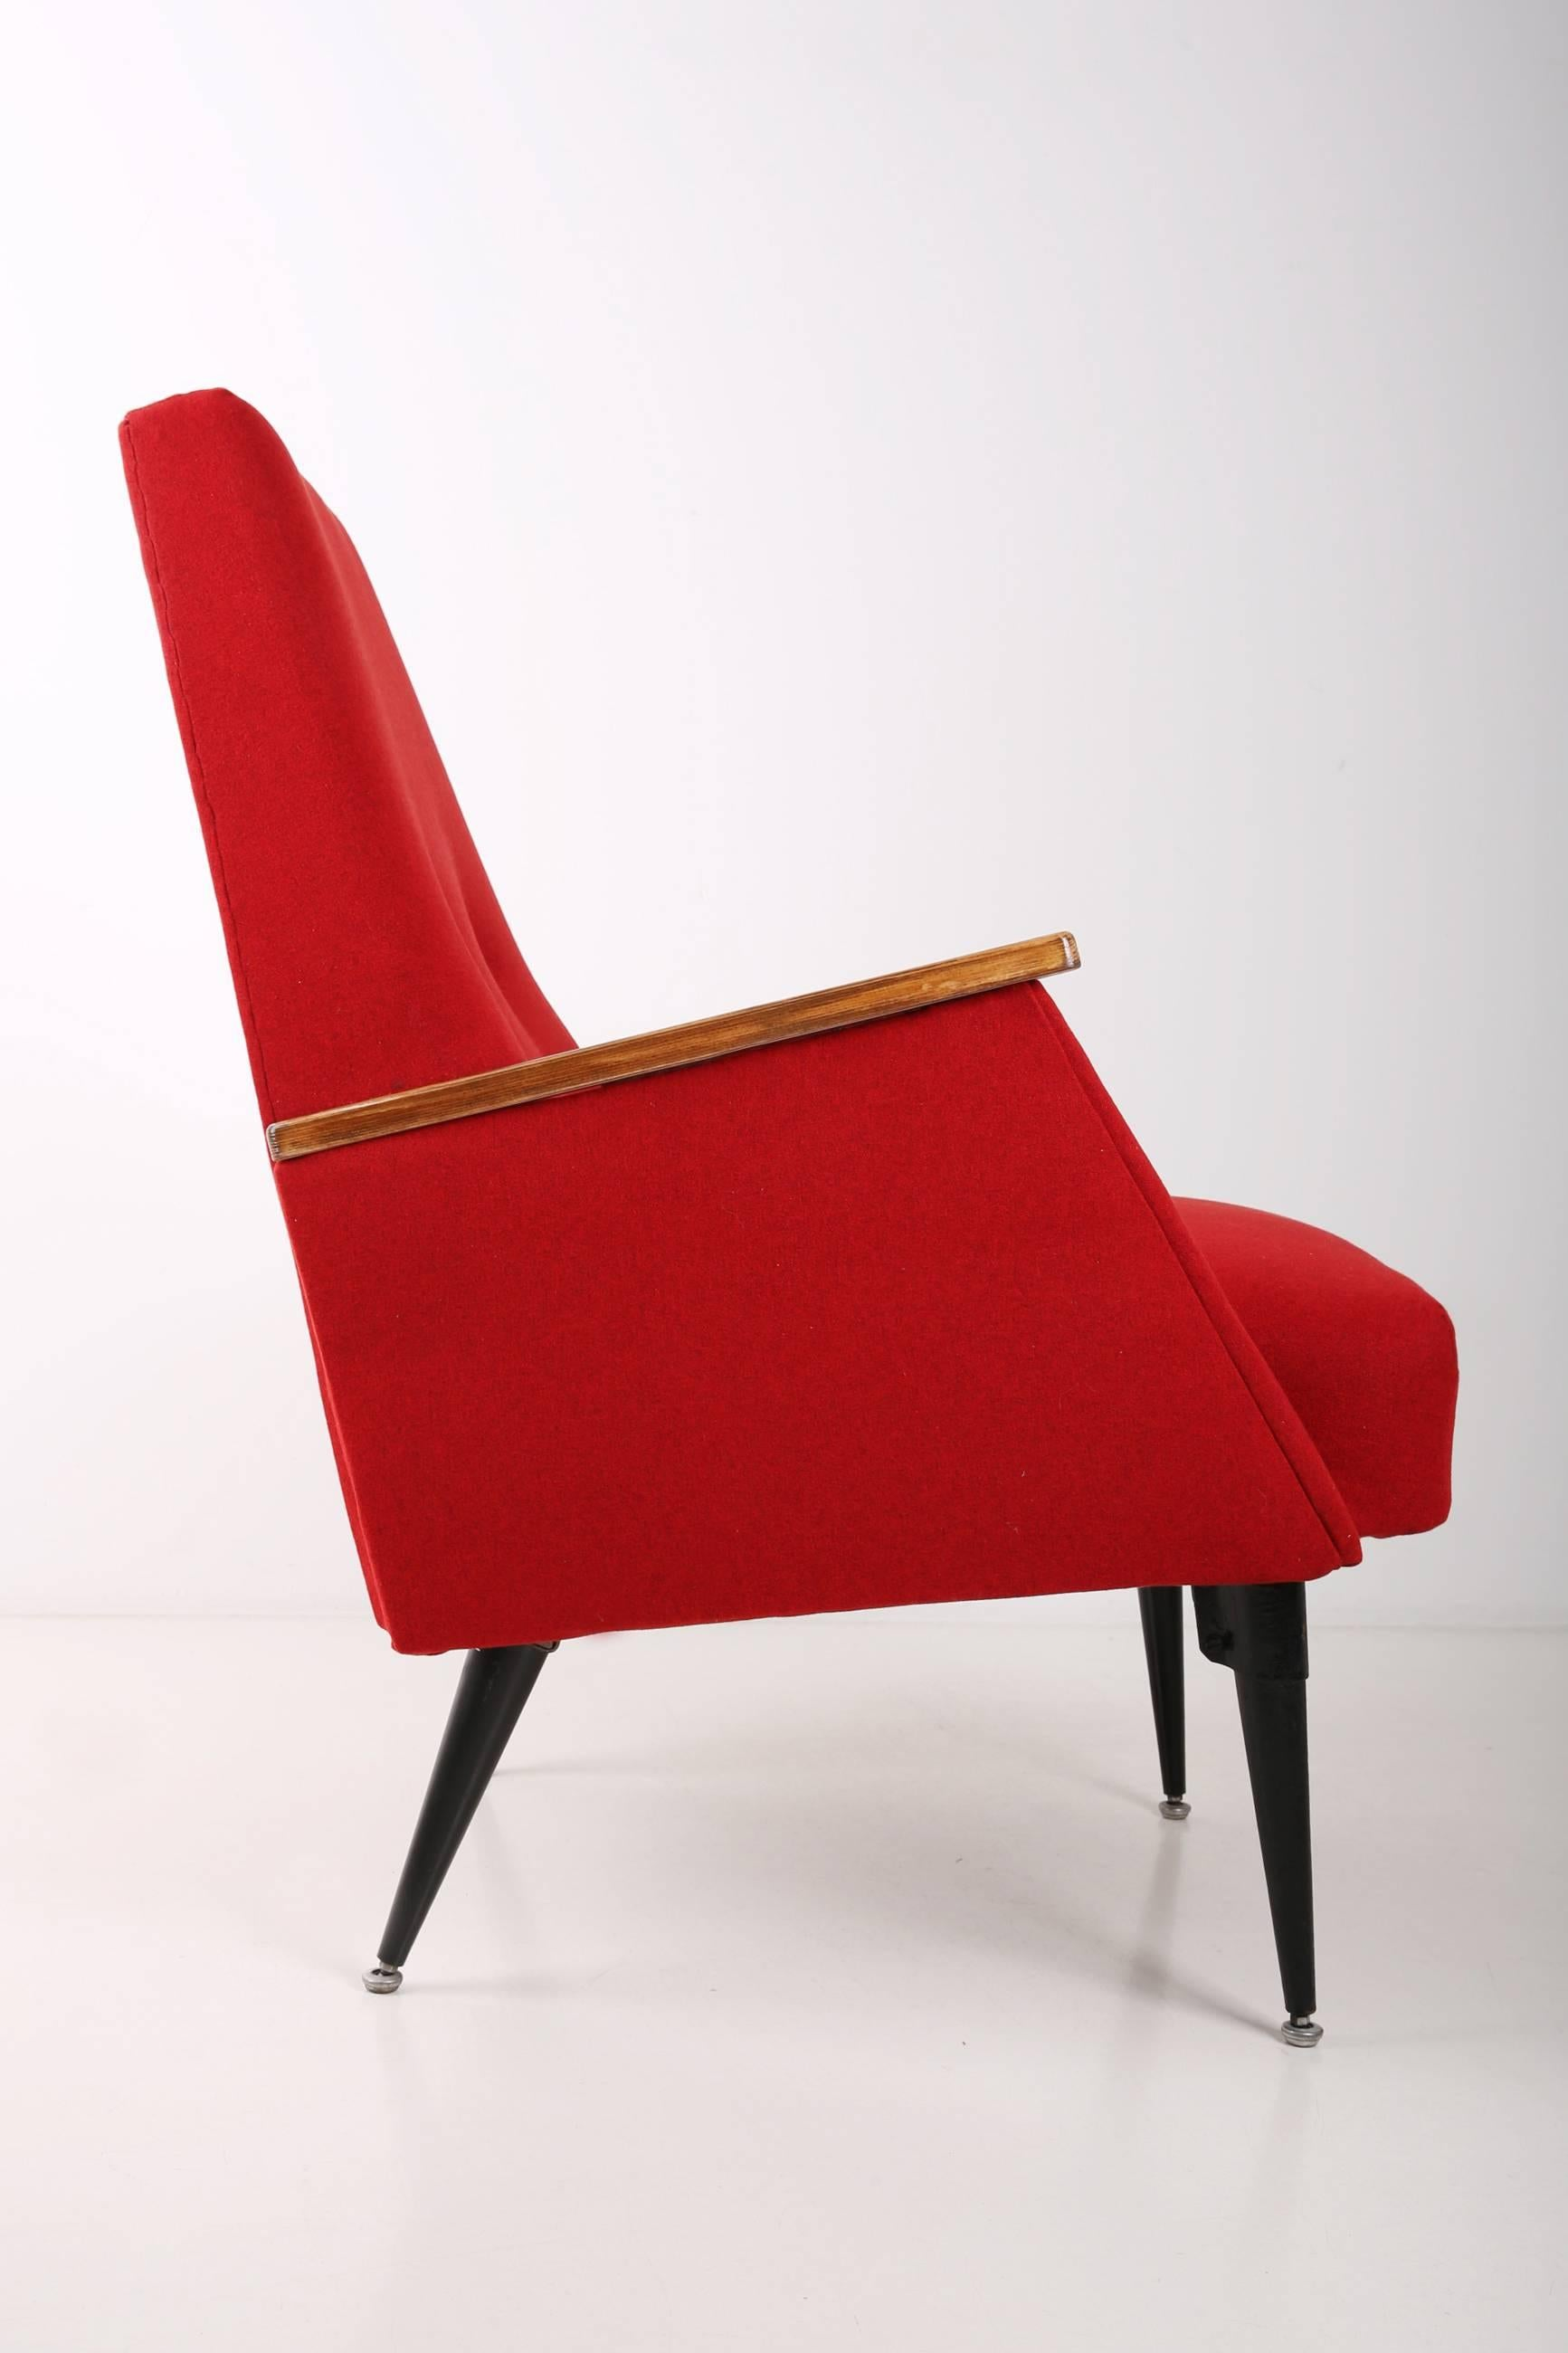 Merveilleux Hand Crafted Art Deco, Vintage Red Big Armchair, 1960s For Sale